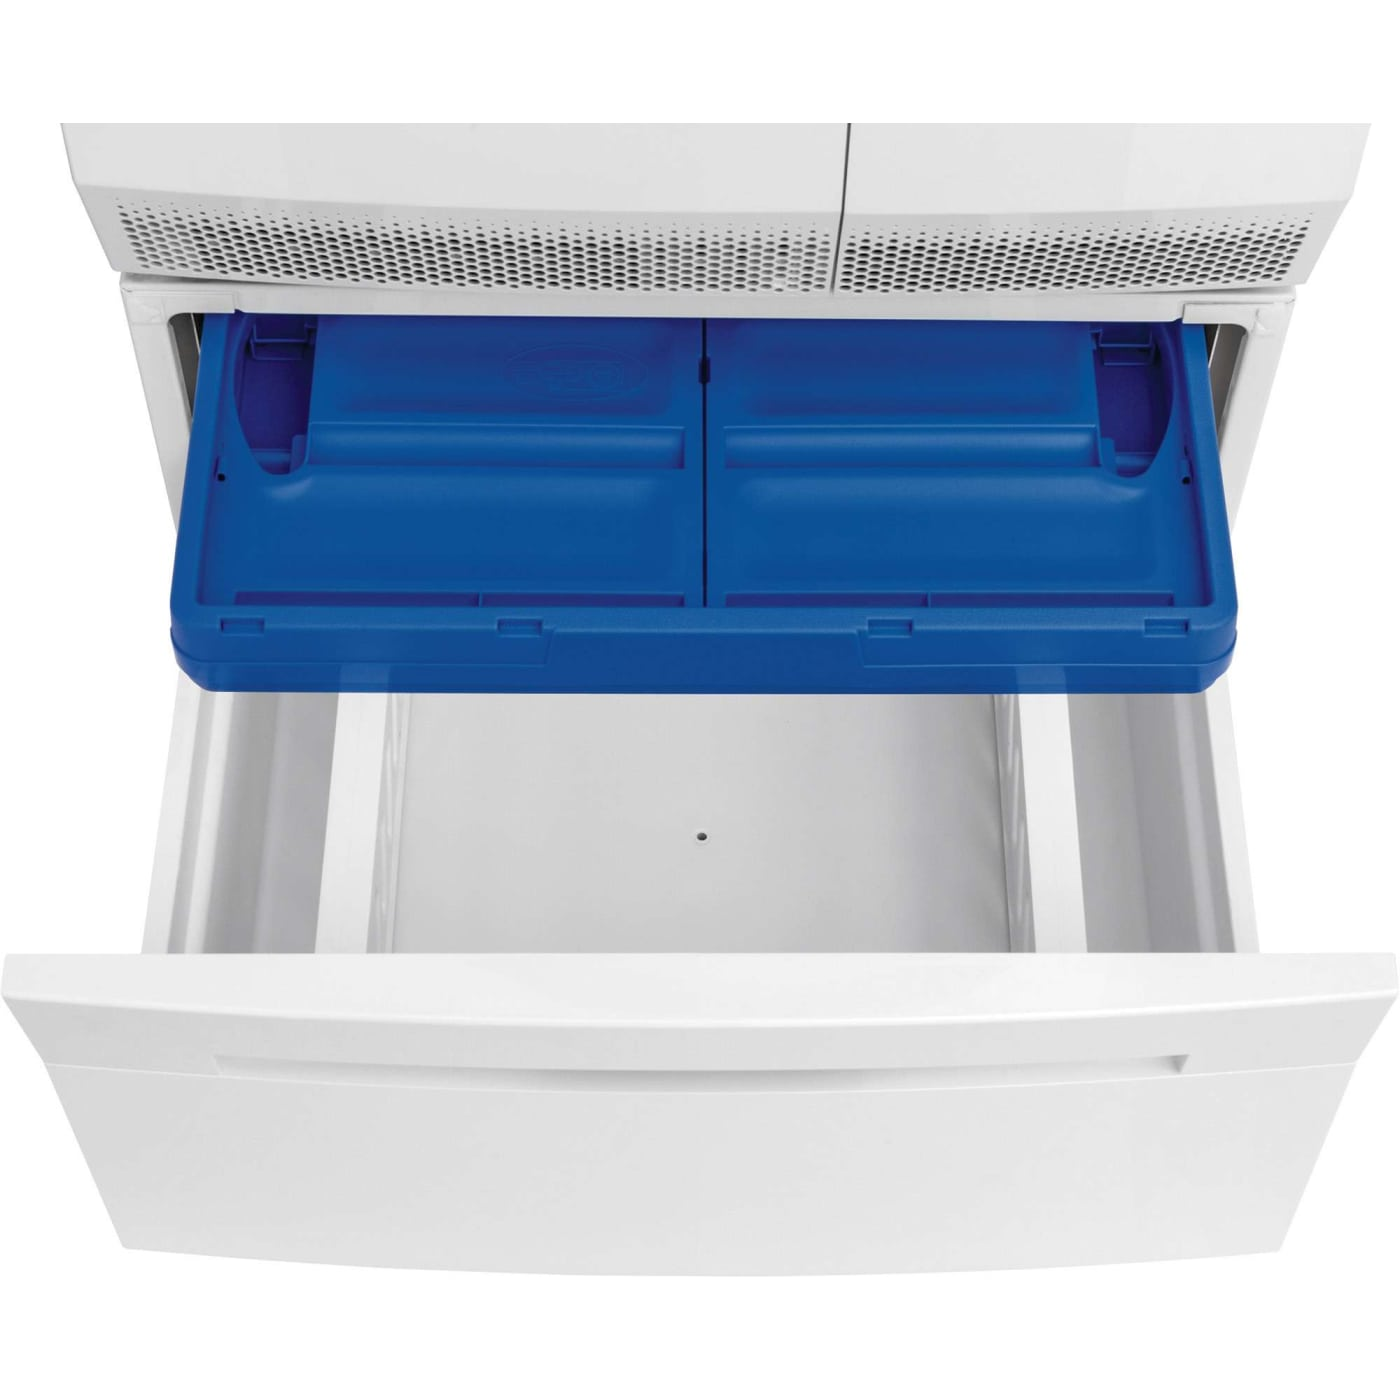 ebay electrolux cancel island white inflowcomponent global laundry res p pedestal s content inflow